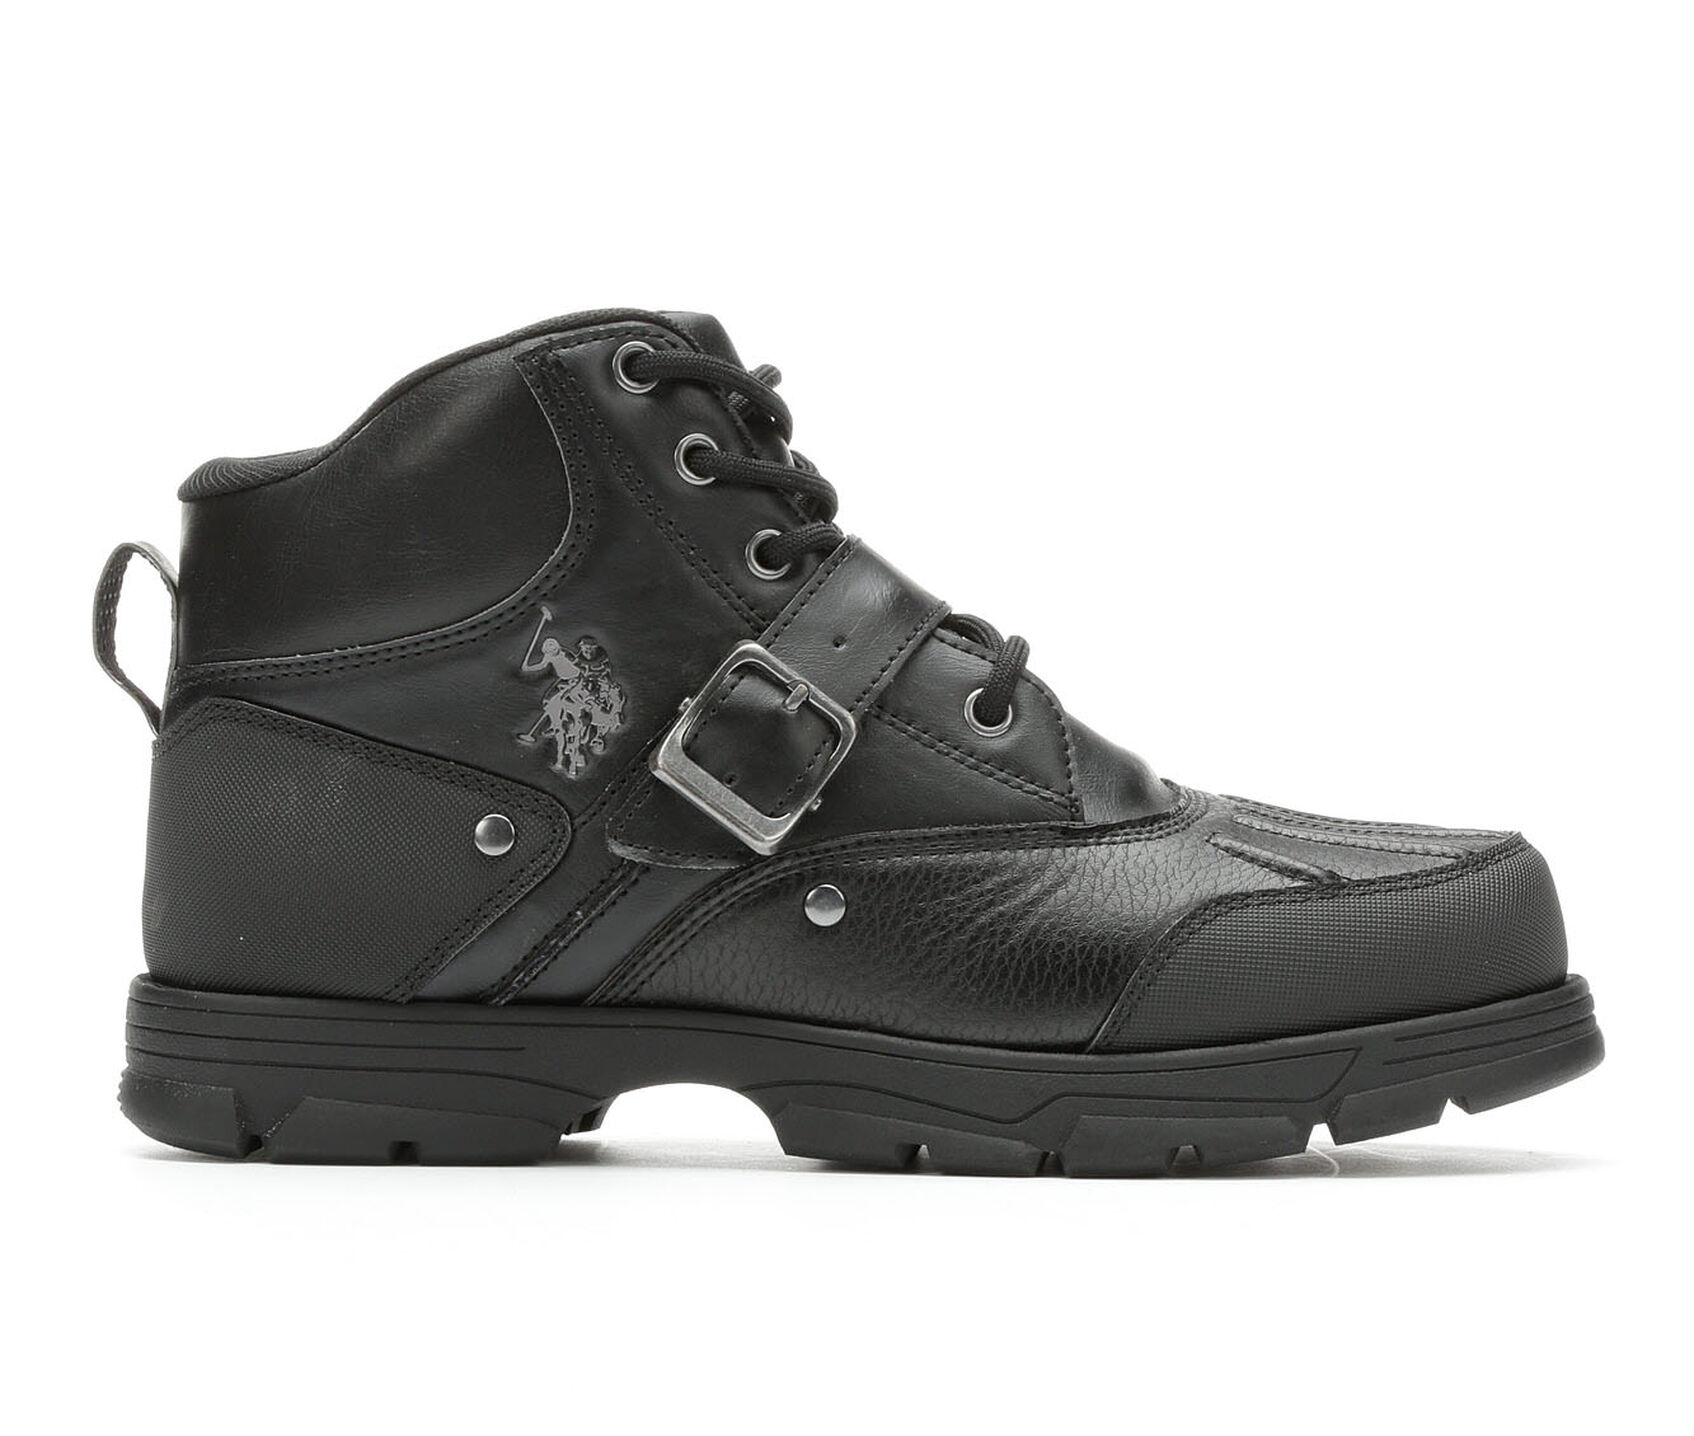 d1d97ca8e96 Men's US Polo Assn Kedge Lace-Up Boots